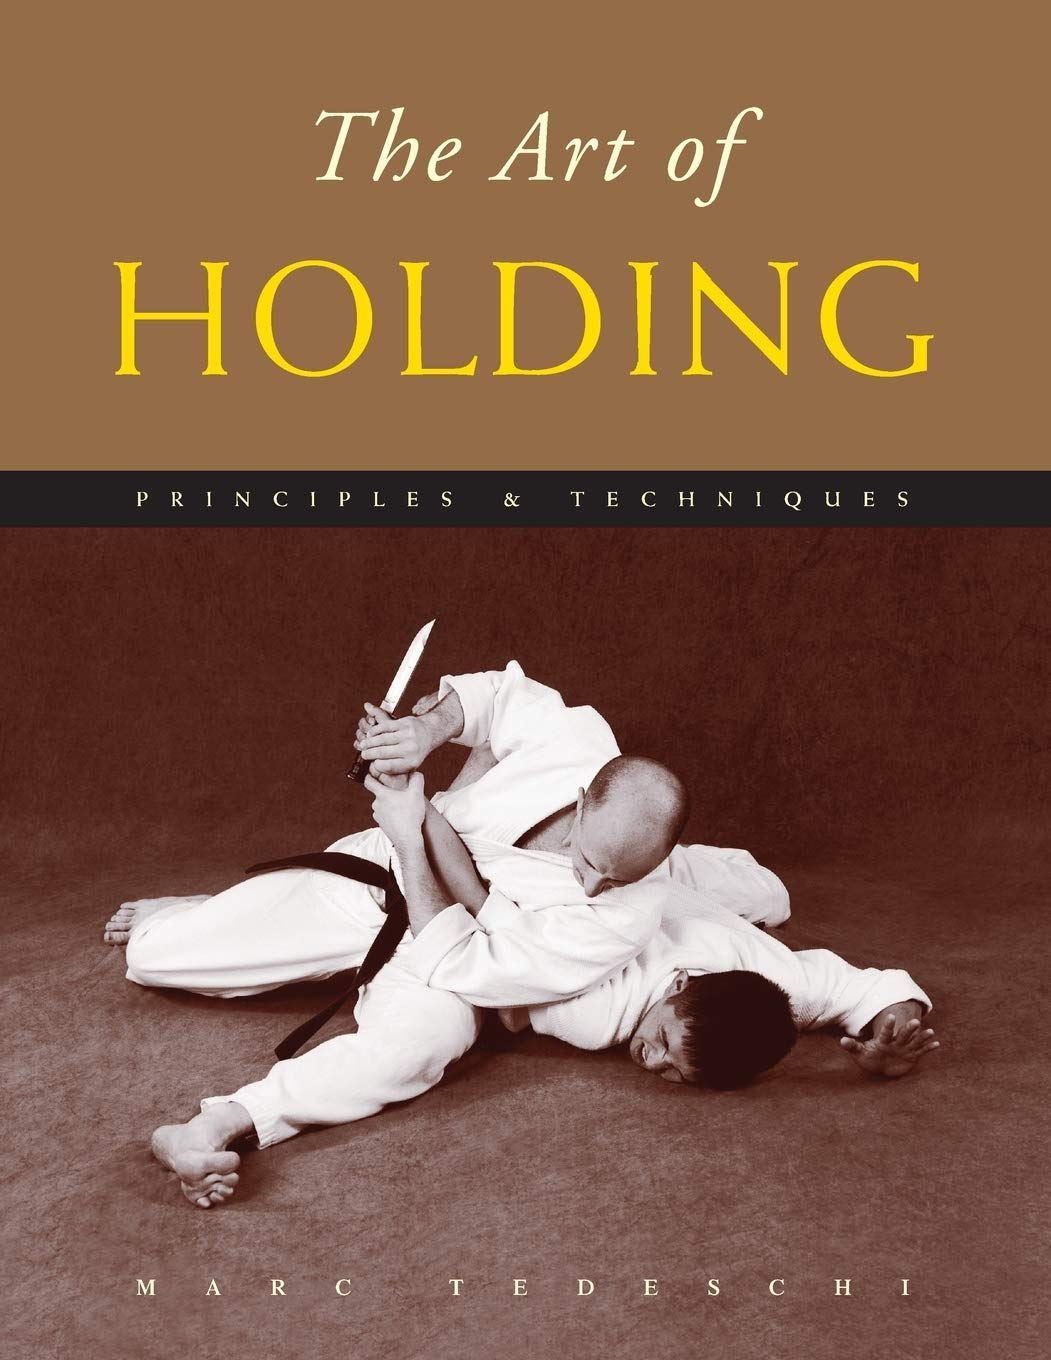 The Art of Holding: Principles & Techniques